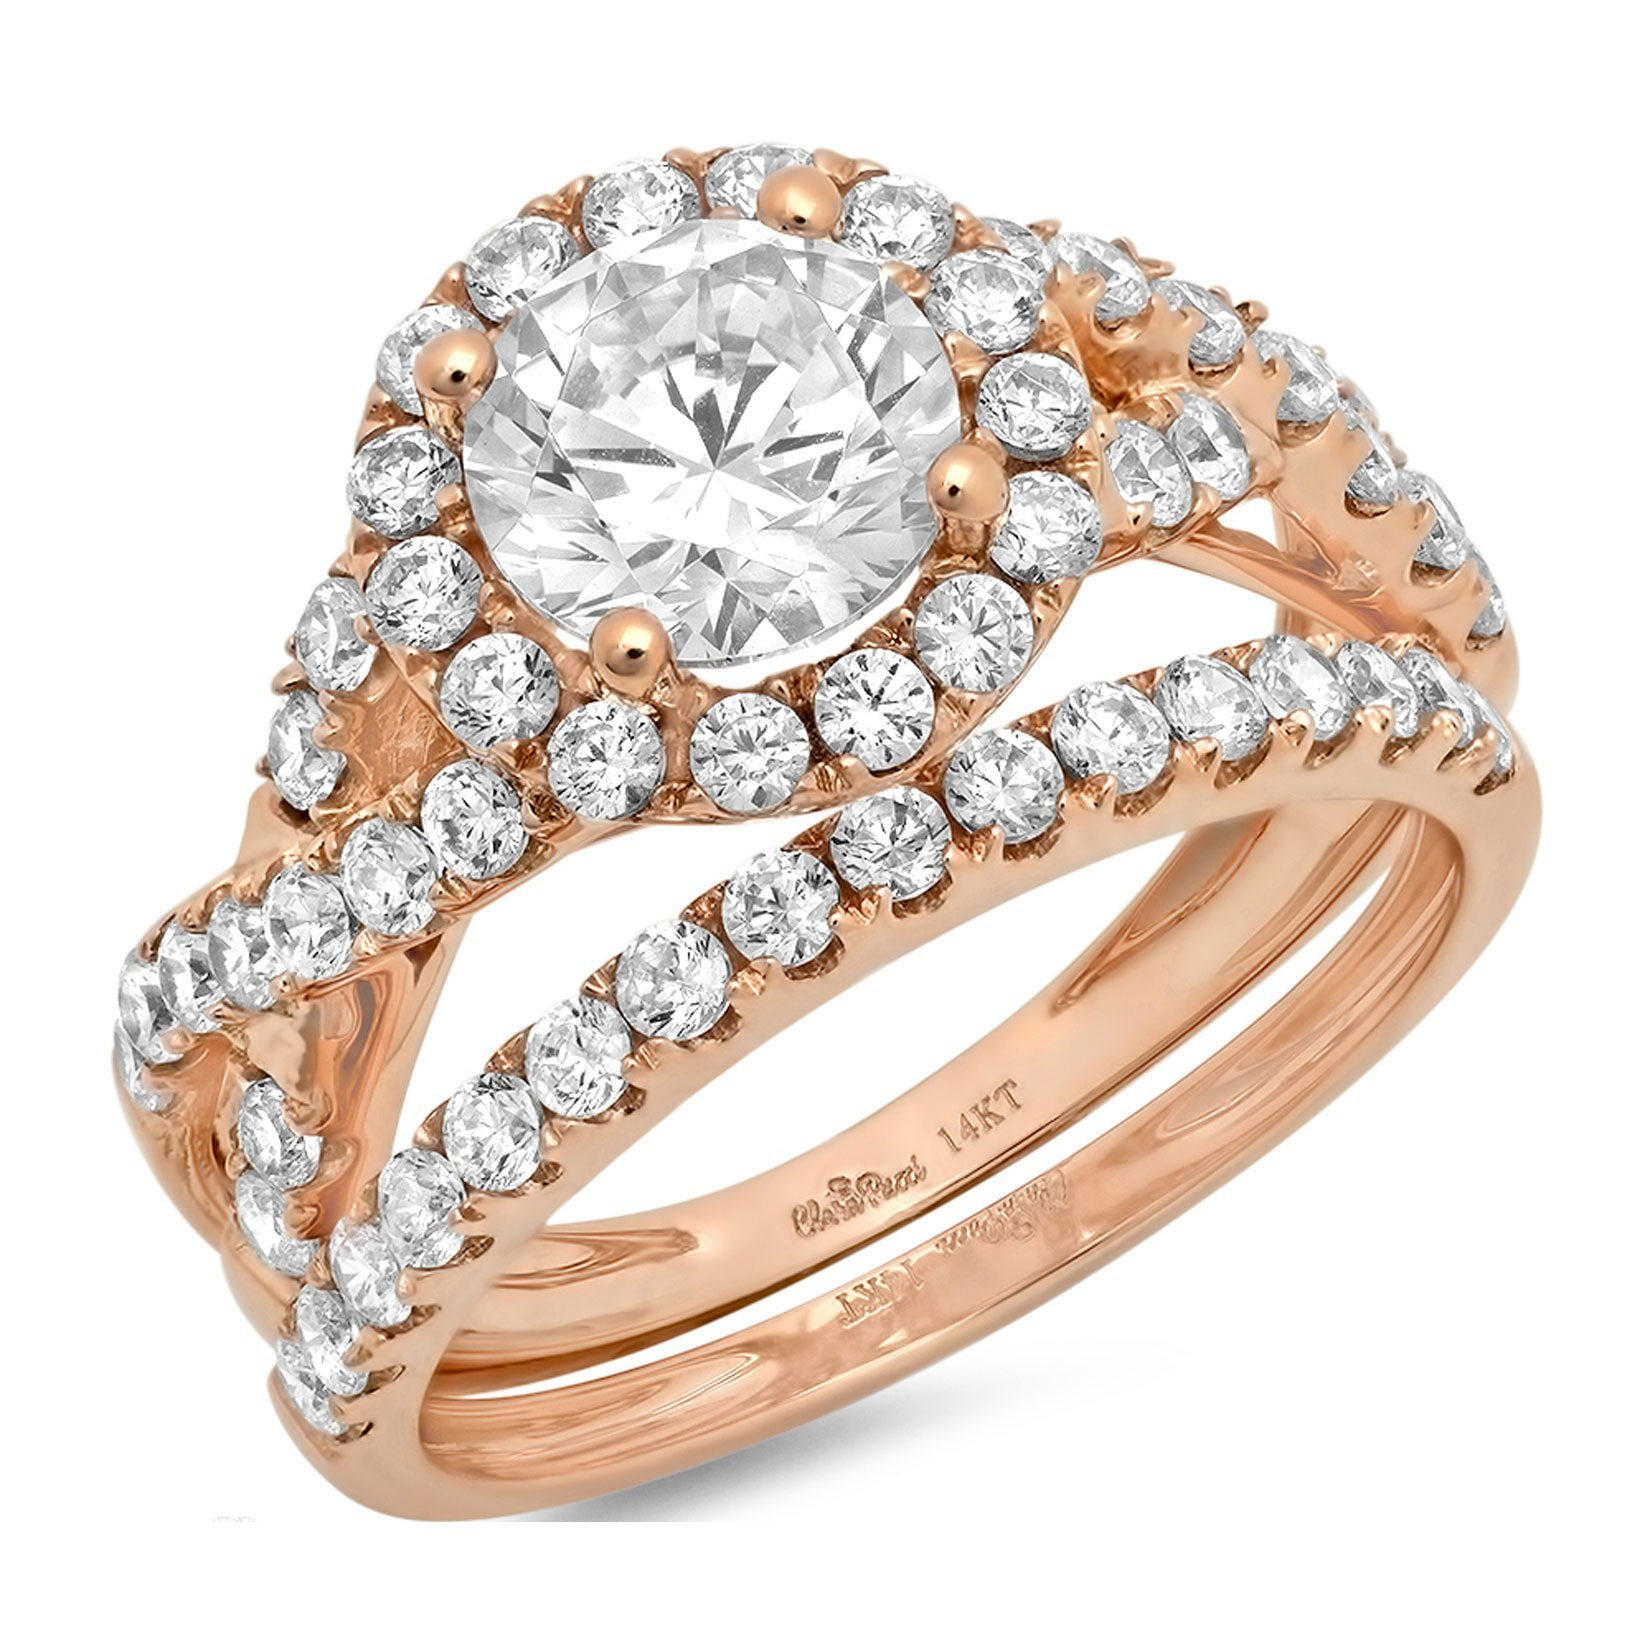 Clara Pucci 2.6 Ct Round Cut Pave Halo Bridal Engagement Wedding Anniversary Ring Band Set 14K Rose Gold, Size 10